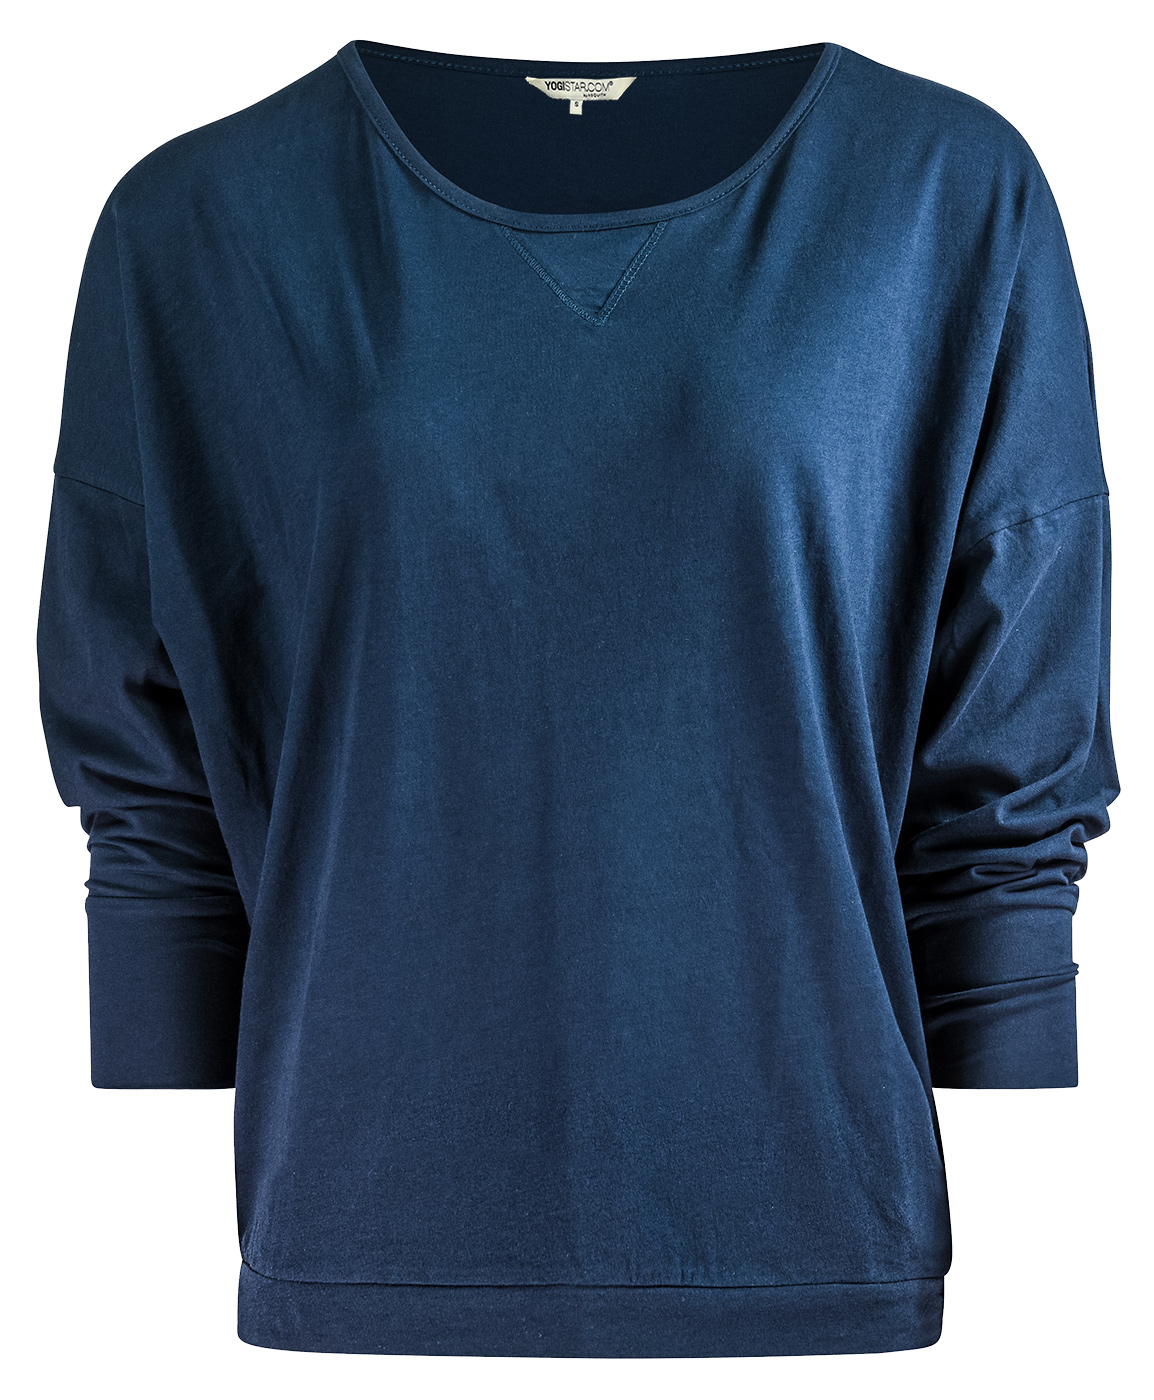 "Yoga-Shirt ""Batwing"" - navy"